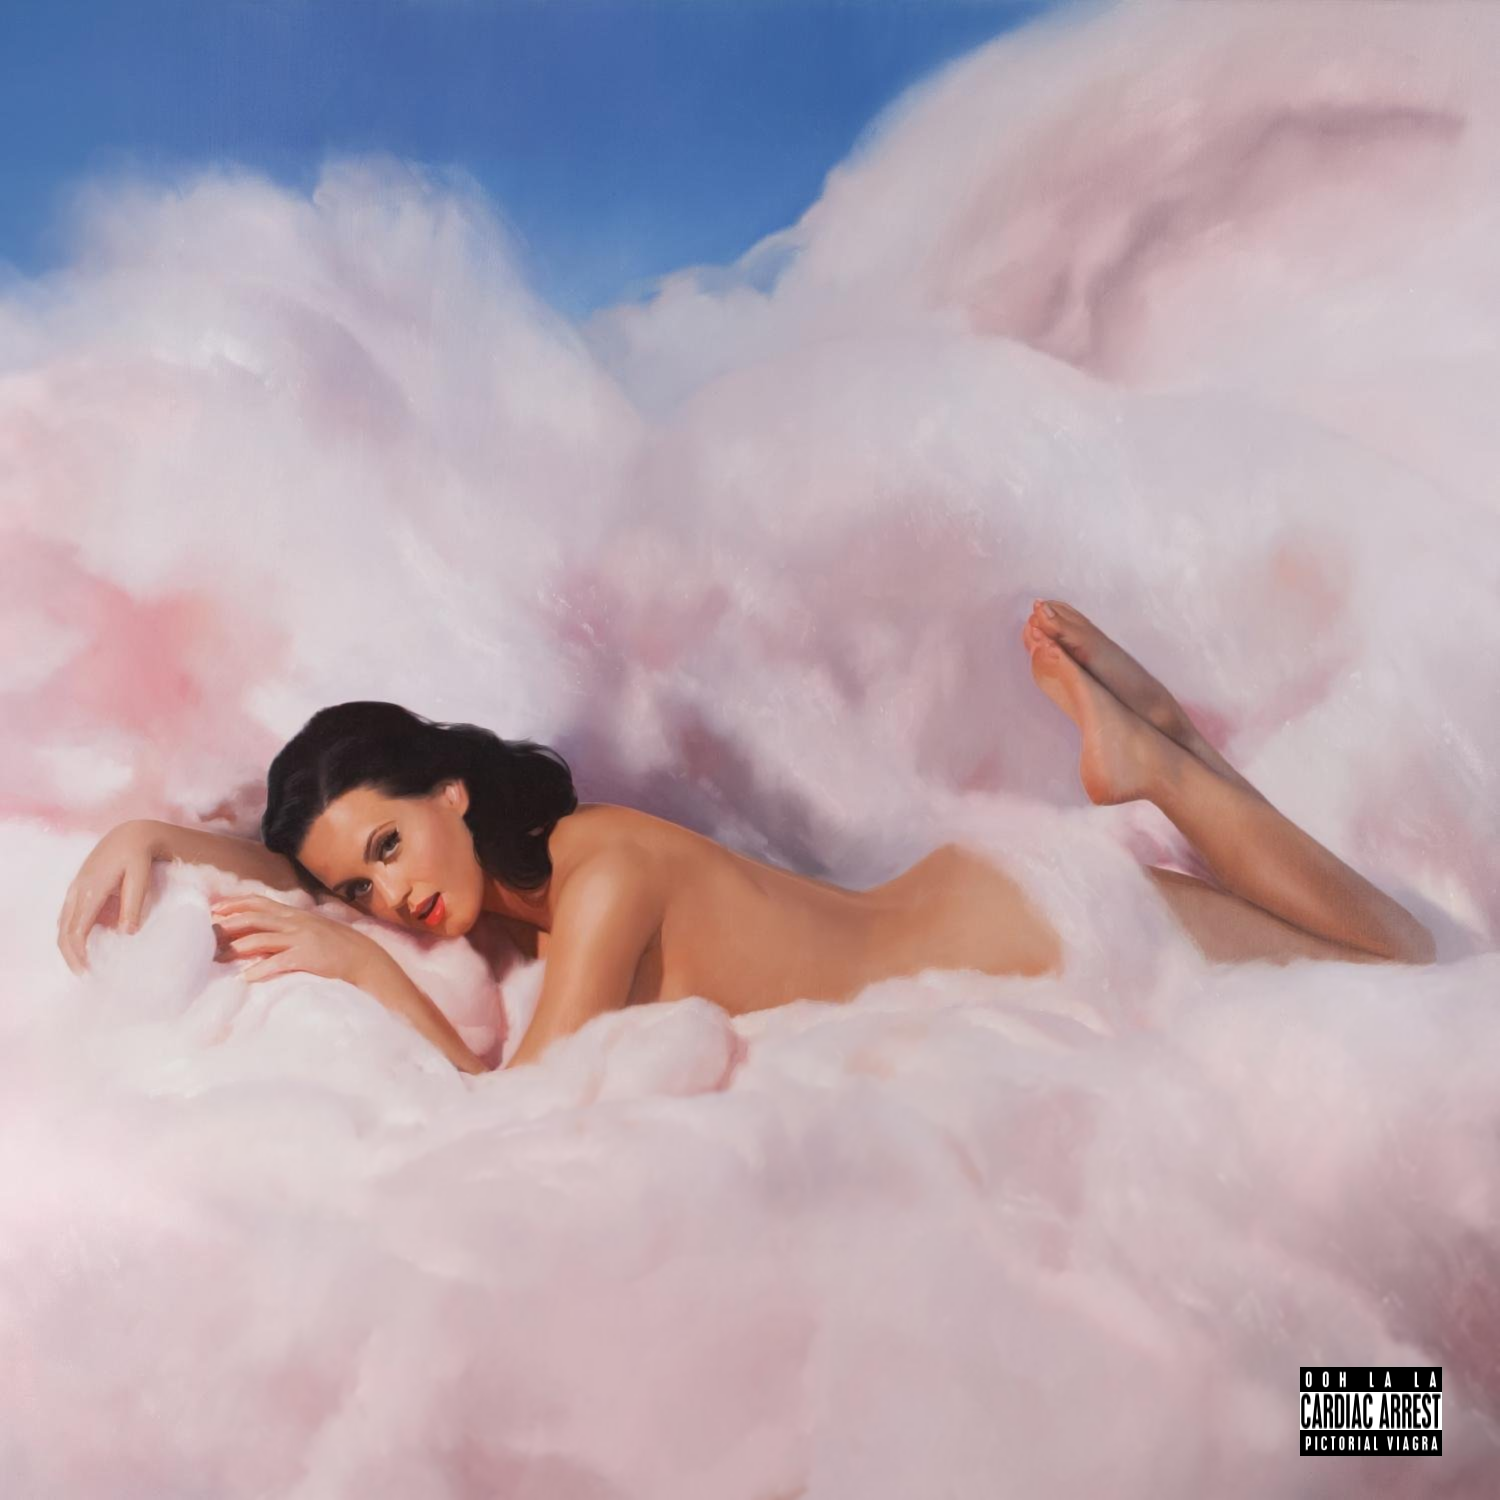 Album cover parody of Teenage Dream by Katy Perry